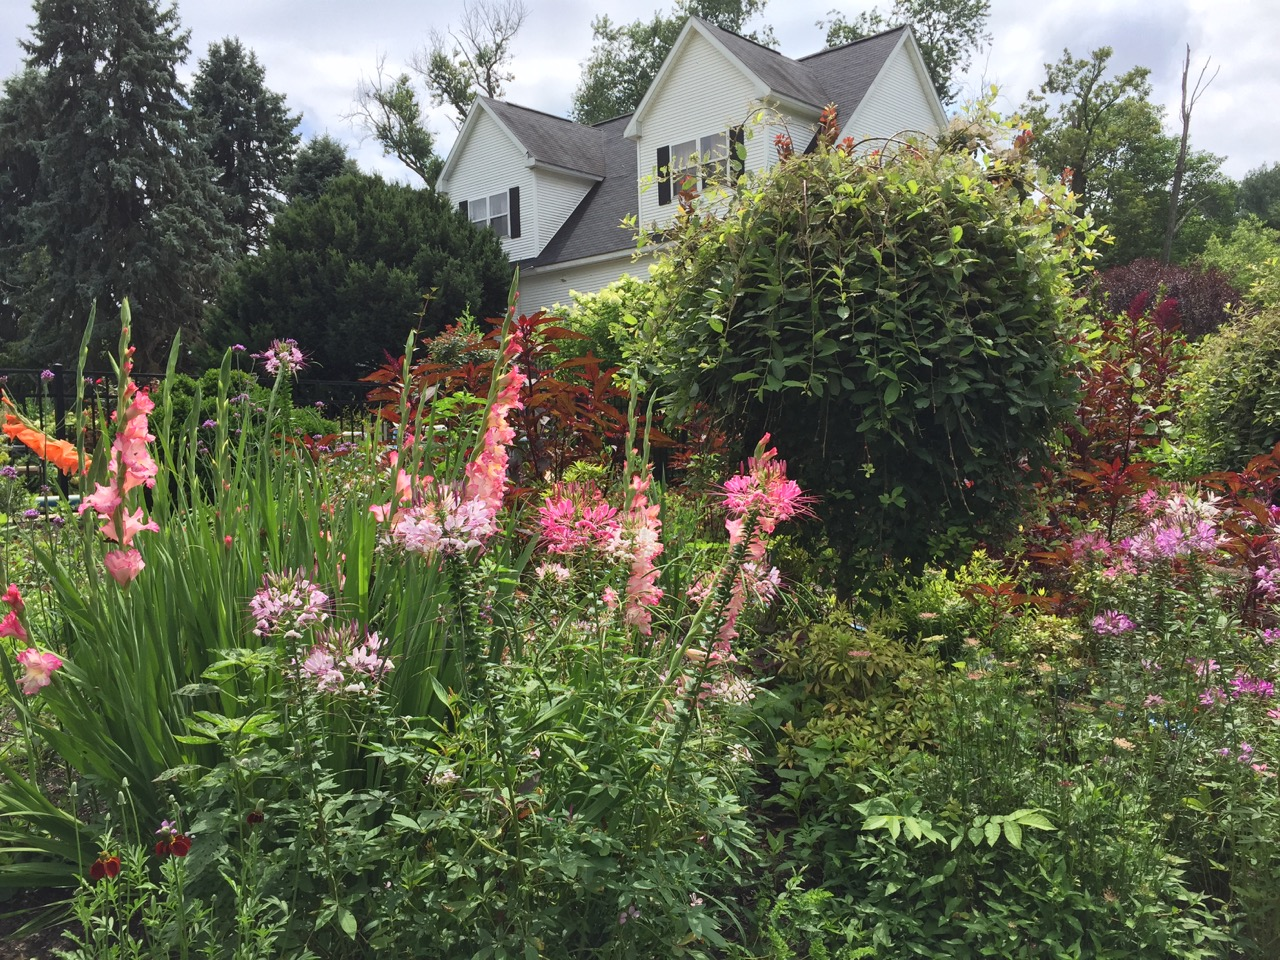 The Chapple Home and Gardens